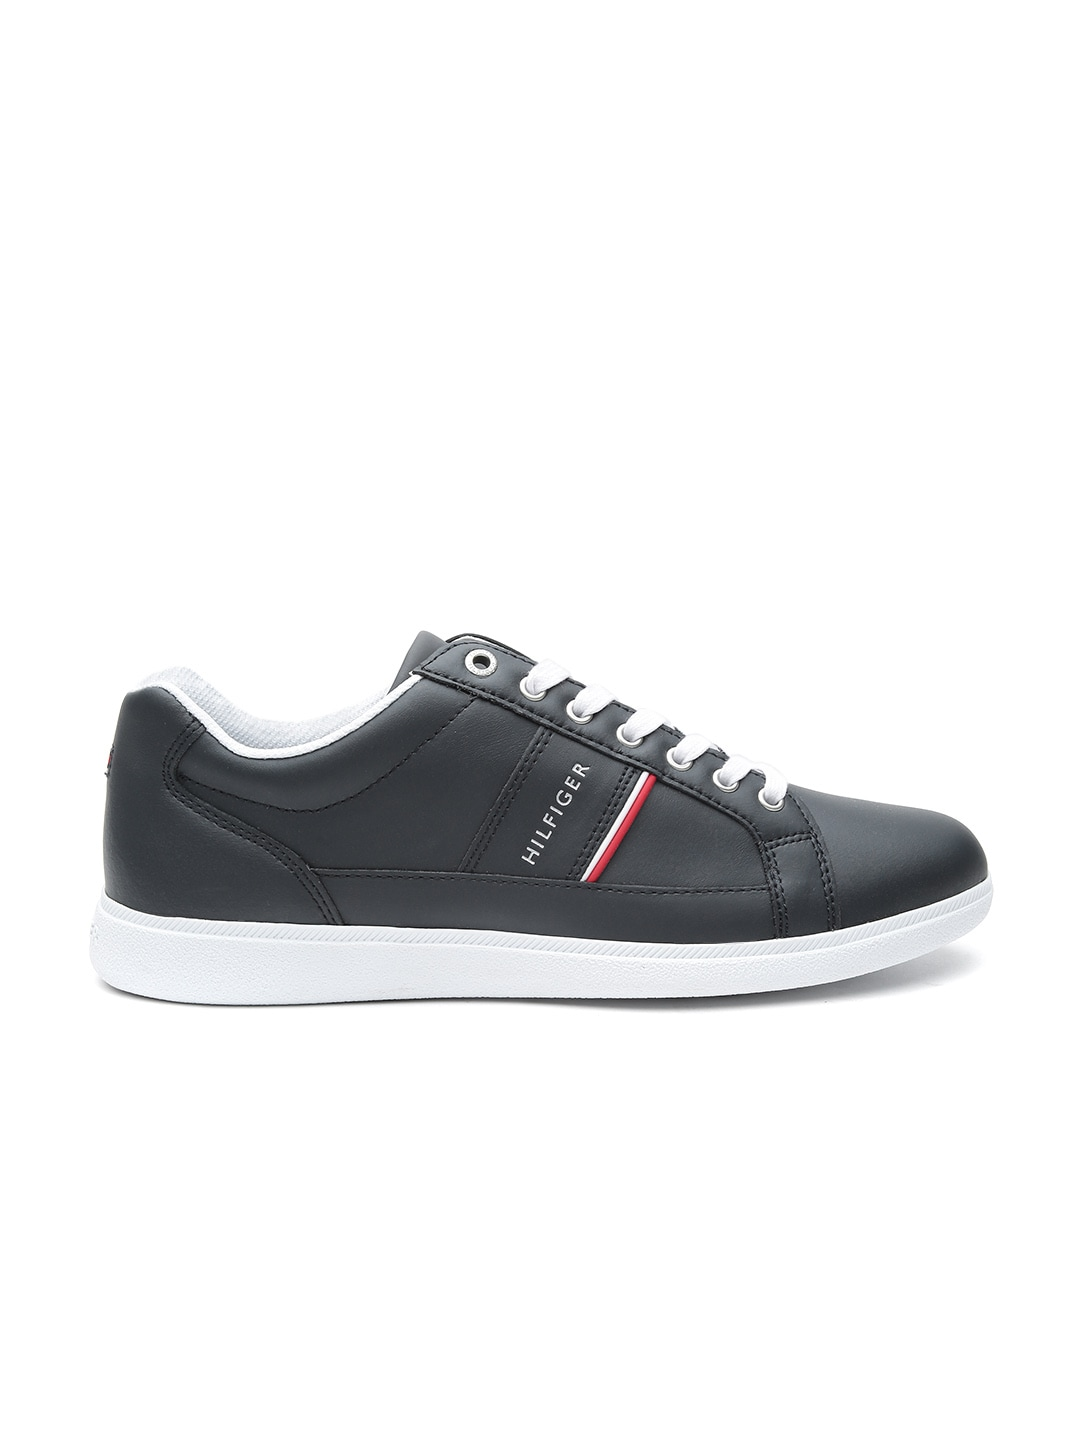 90d543b7eb1292 Tommy Hilfiger Shoes - Buy Tommy Hilfiger Shoes Online - Myntra